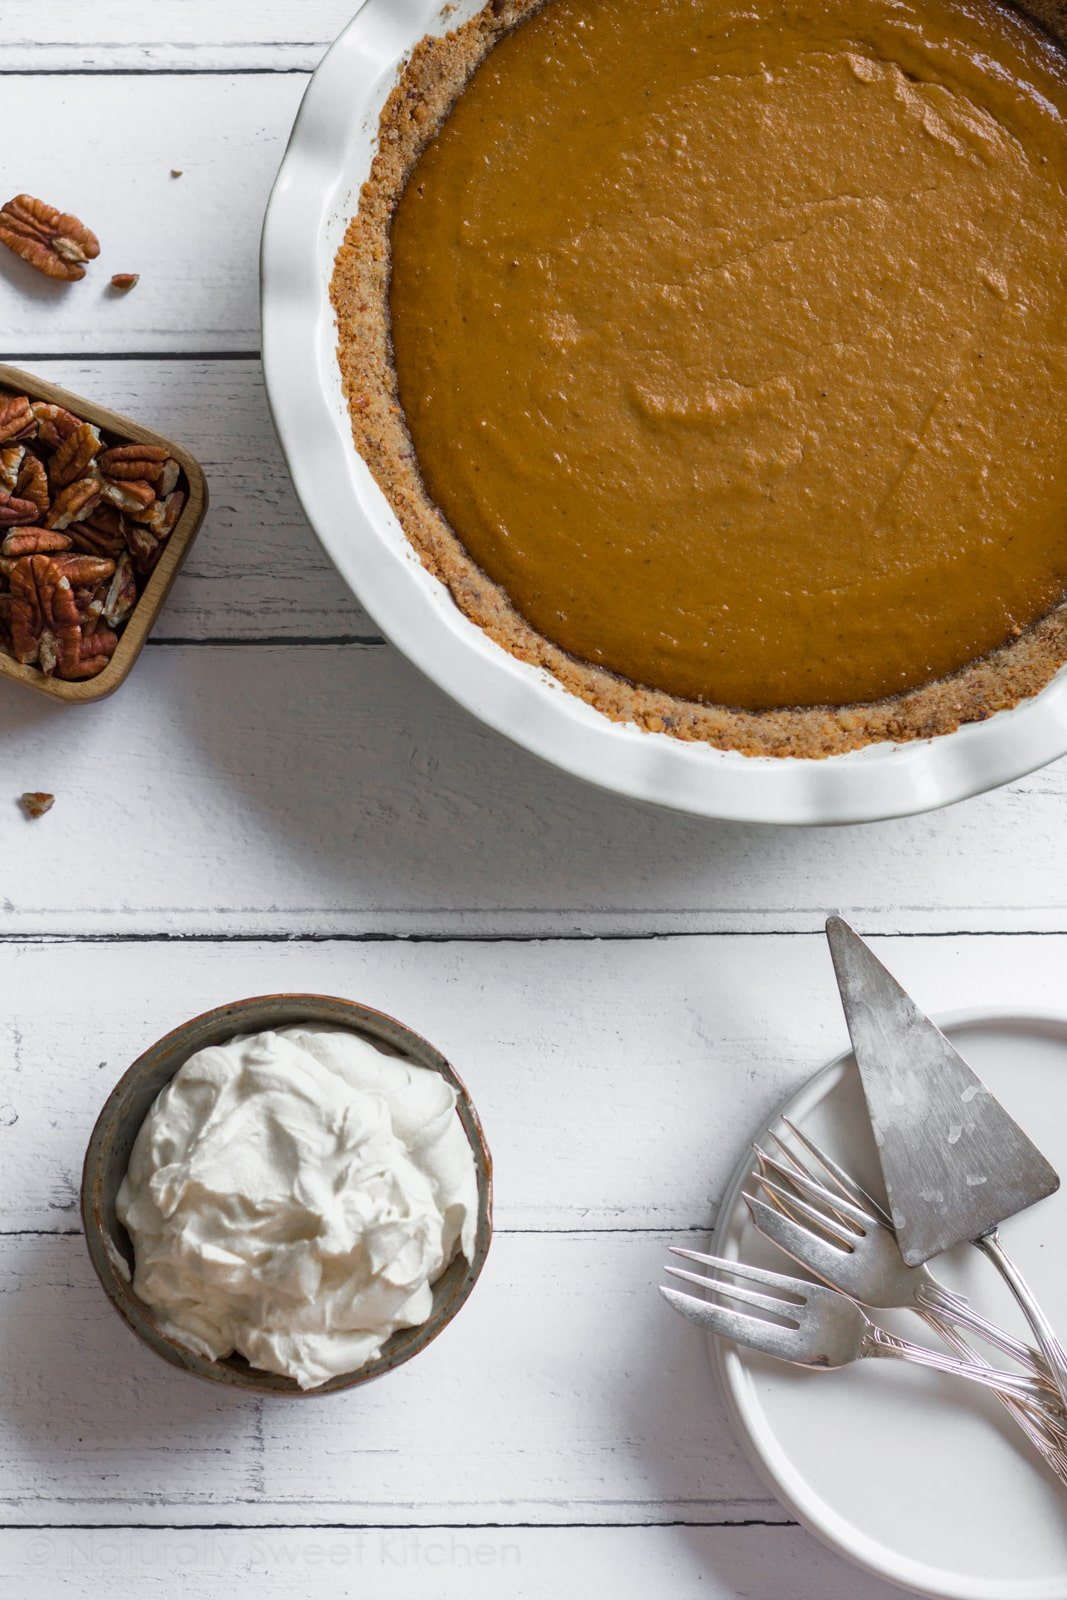 Enjoy a slice of this refined sugar free Pumpkin Pie with a Pecan Pretzel Crust after your Thanksgiving feast. Your guests will love the traditional sweet filling combined with the unconventional salty crunch. | naturallysweetkitchen.com #pumpkinpie #pretzelcrust